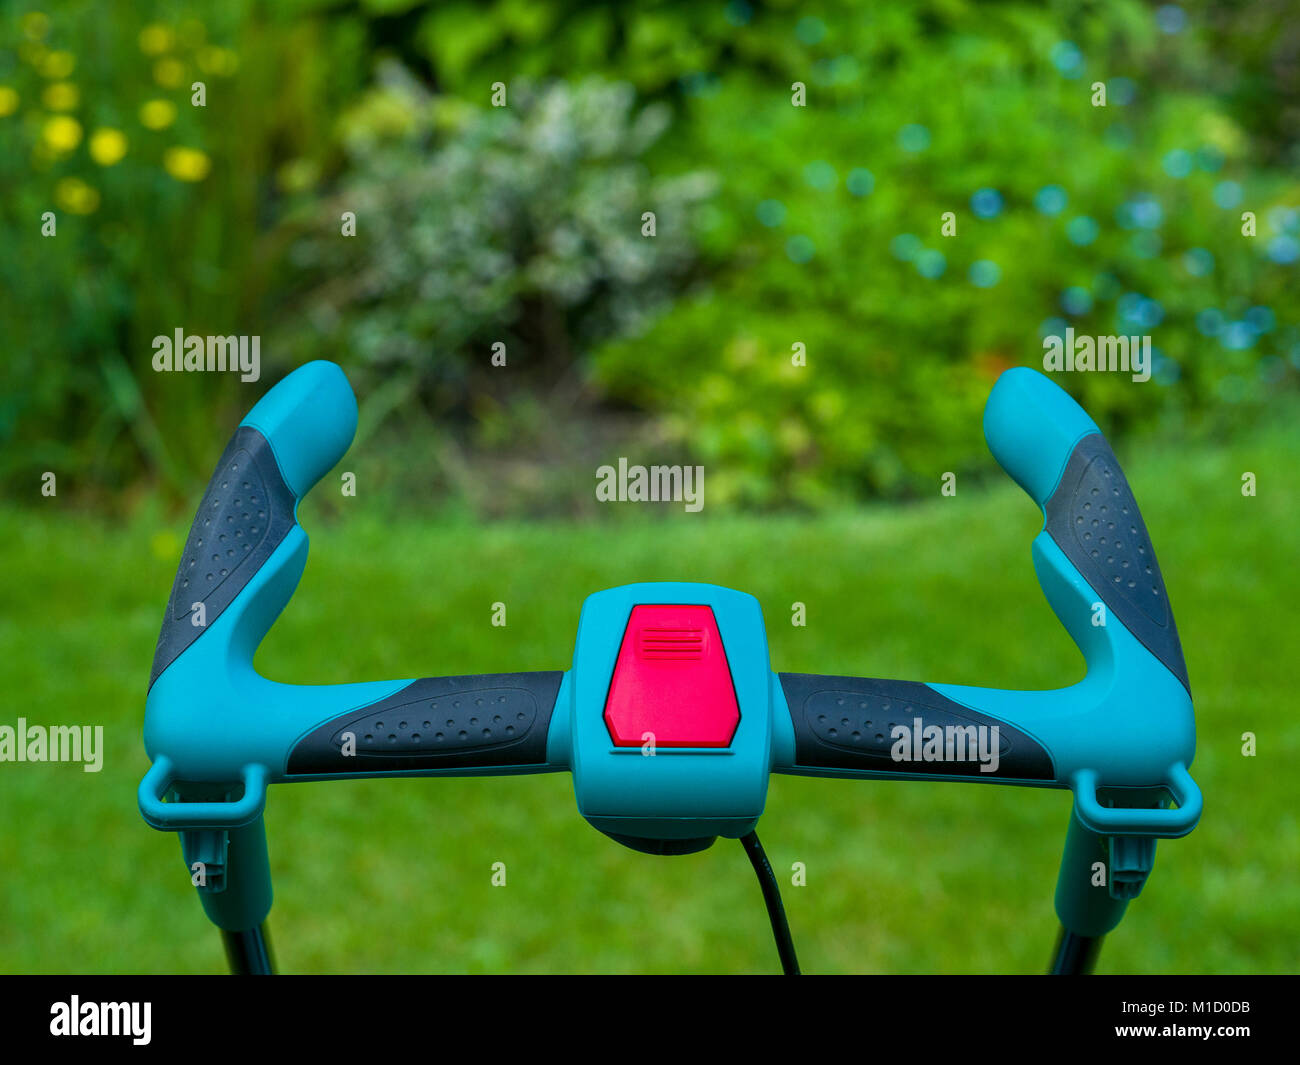 Ergonomic handlebars of cordless lawnmower - Stock Image